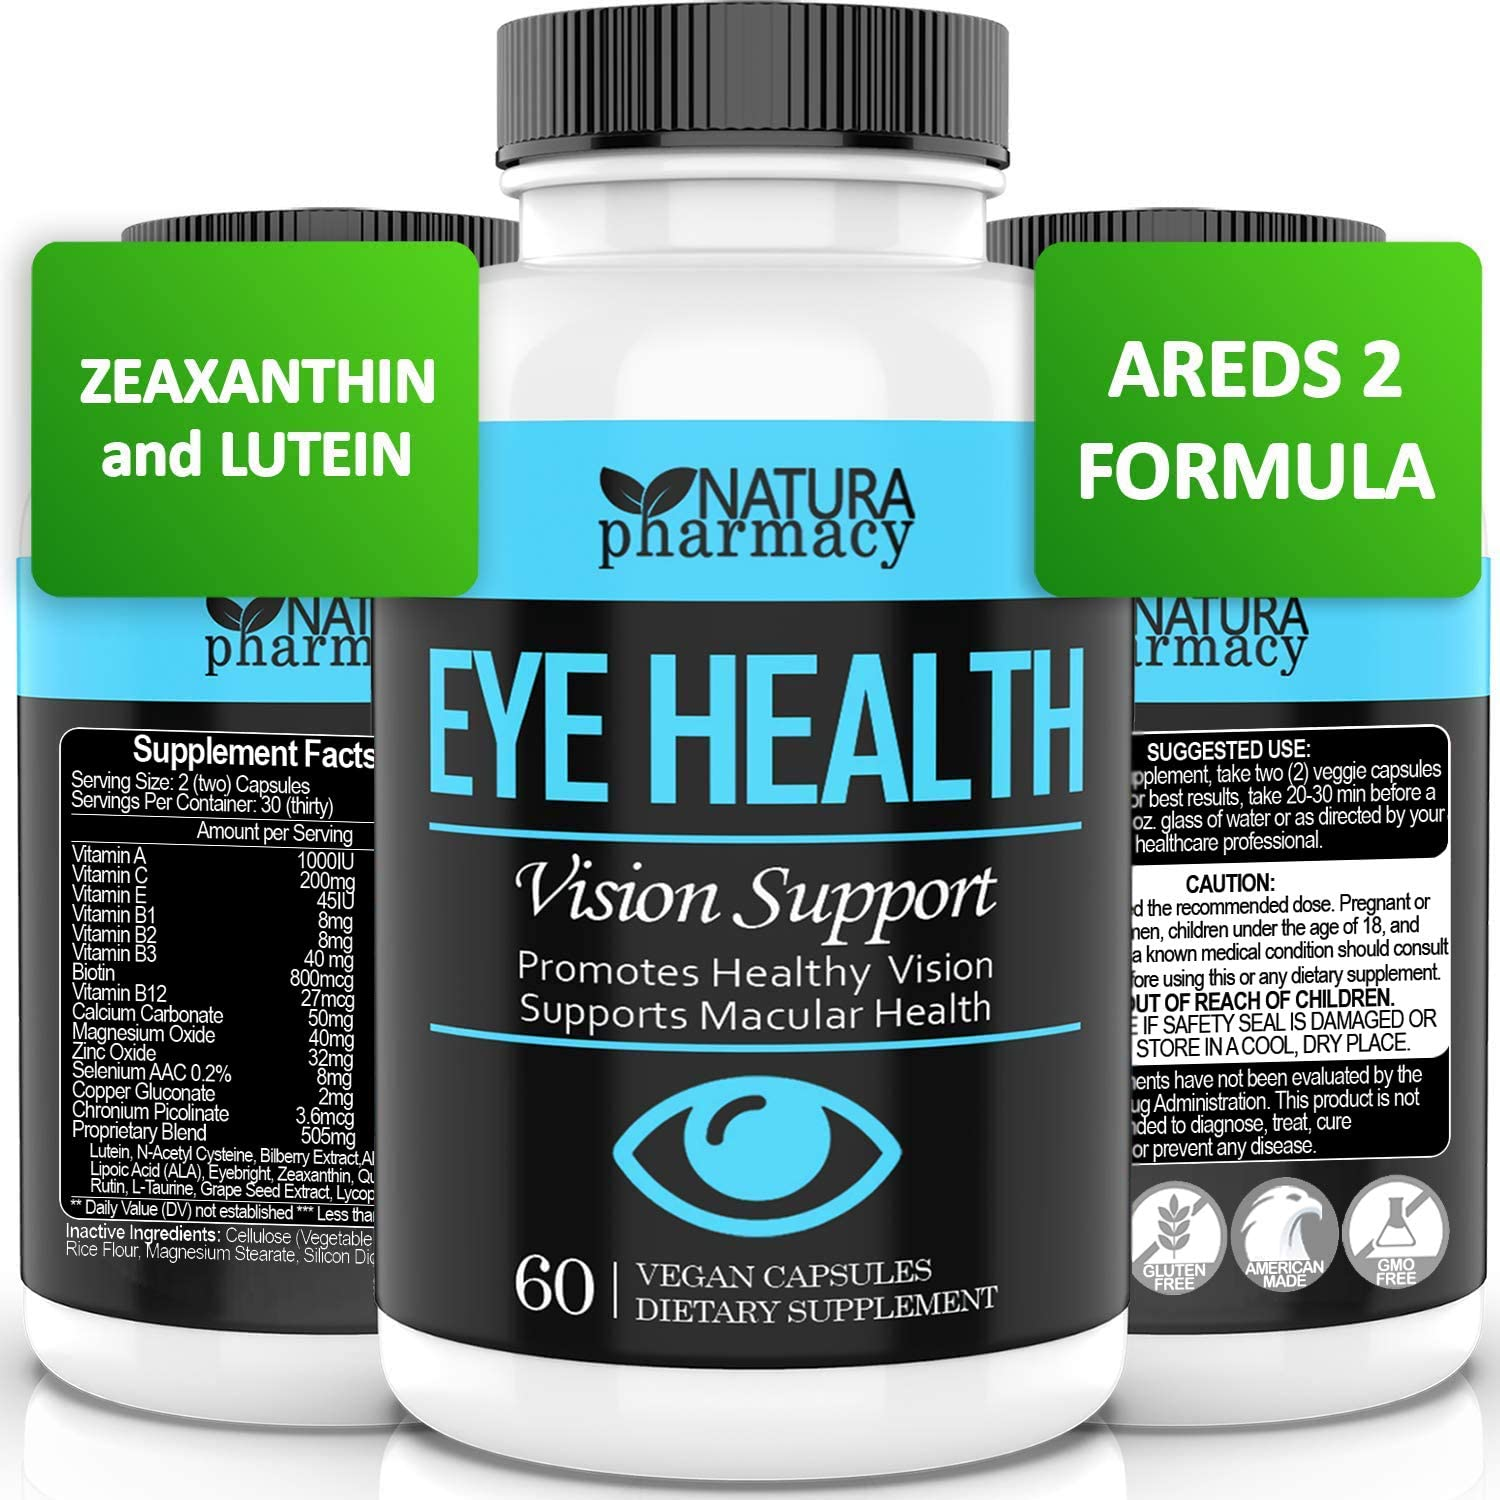 Vegan Eye Health Vitamins AREDS 2 Formula with Lutein, Zeaxanthin, Zinc and Vitamin C for Macular Degeneration, Strain, Dry Eyes and Vision Support (60)